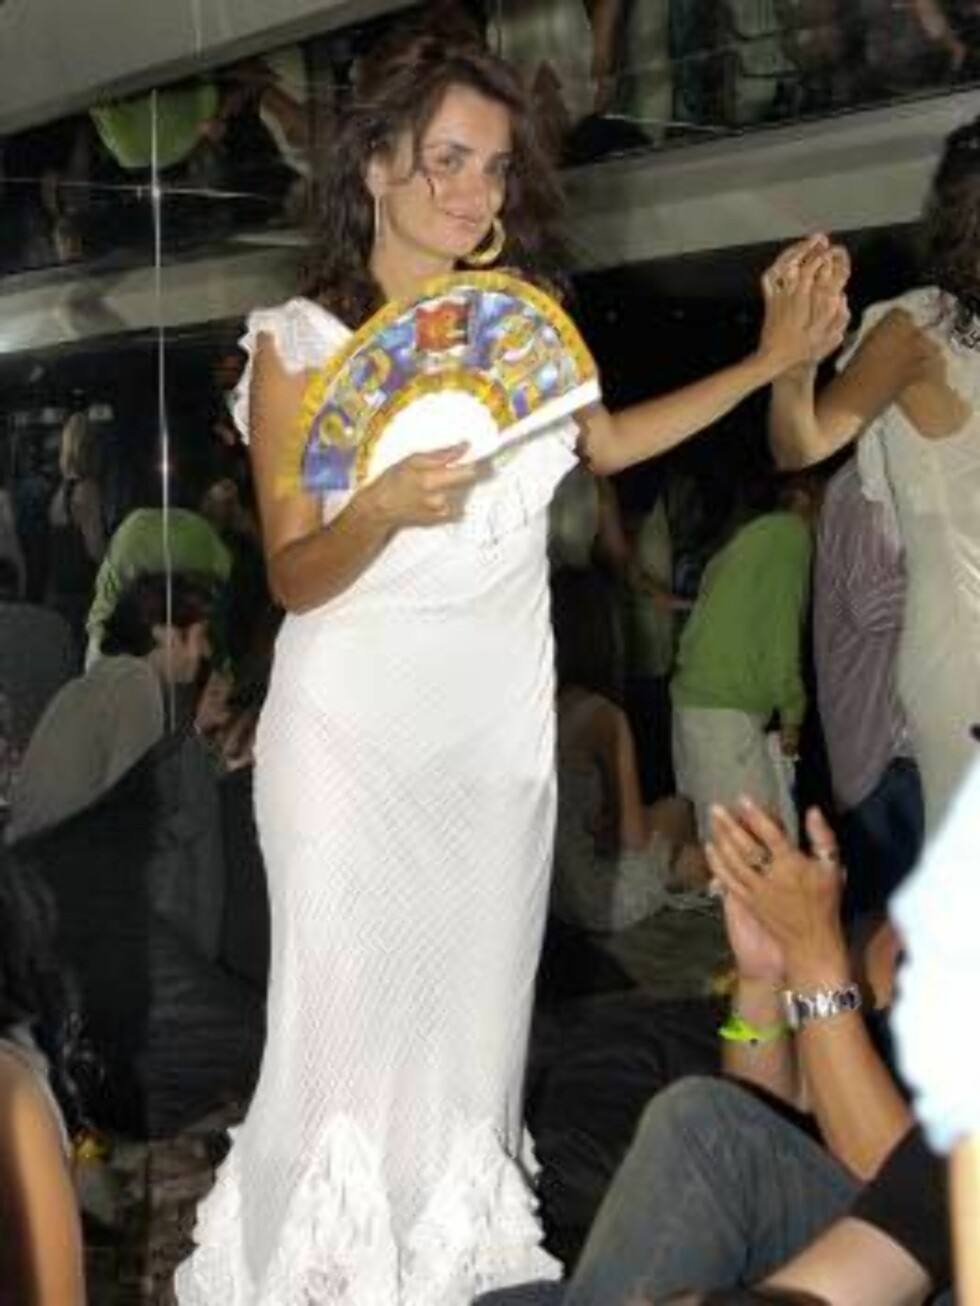 EXCLUSIVE - Penelope Cruz dances at the VIP Room night club to attend the Sean 'P.Diddy' Combs 'Unforgivable' party in Saint-Tropez, France on July 31, 2006. Photo: ABACAPRESS.COM  Code:4001/102741 COPYRIGHT STELLA PICTURES Foto: Stella Pictures